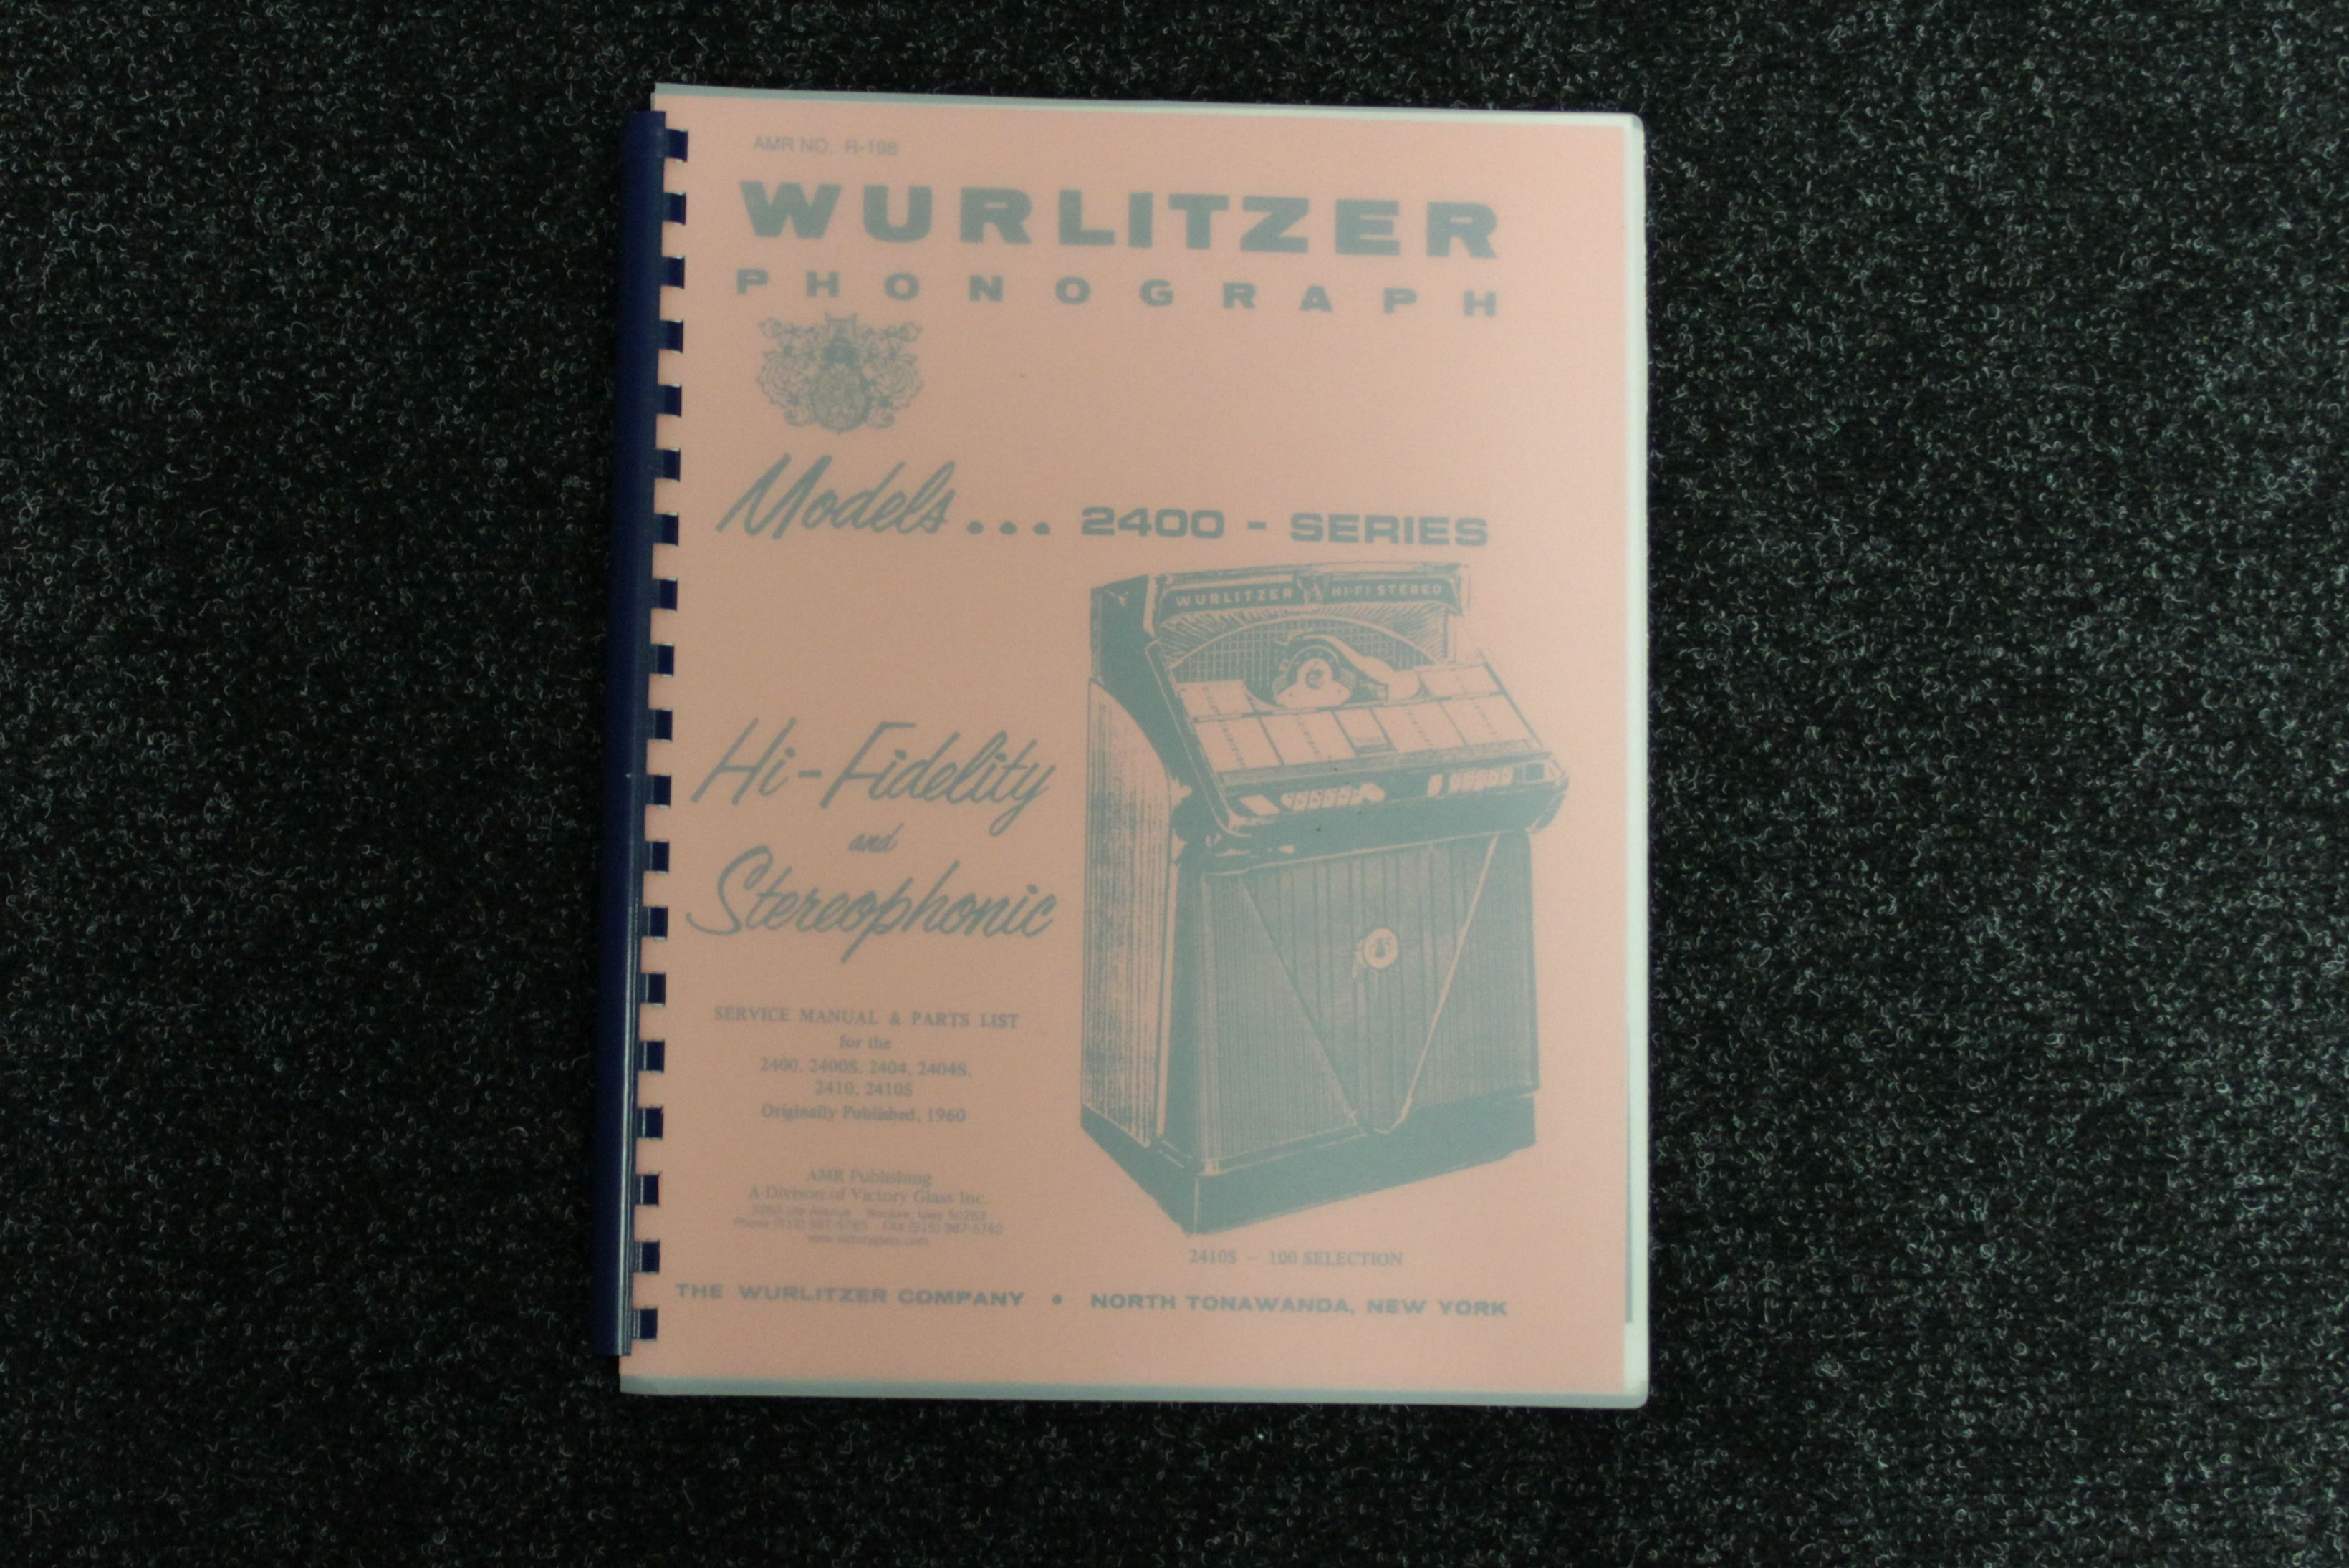 Wurlitzer service manual 2400